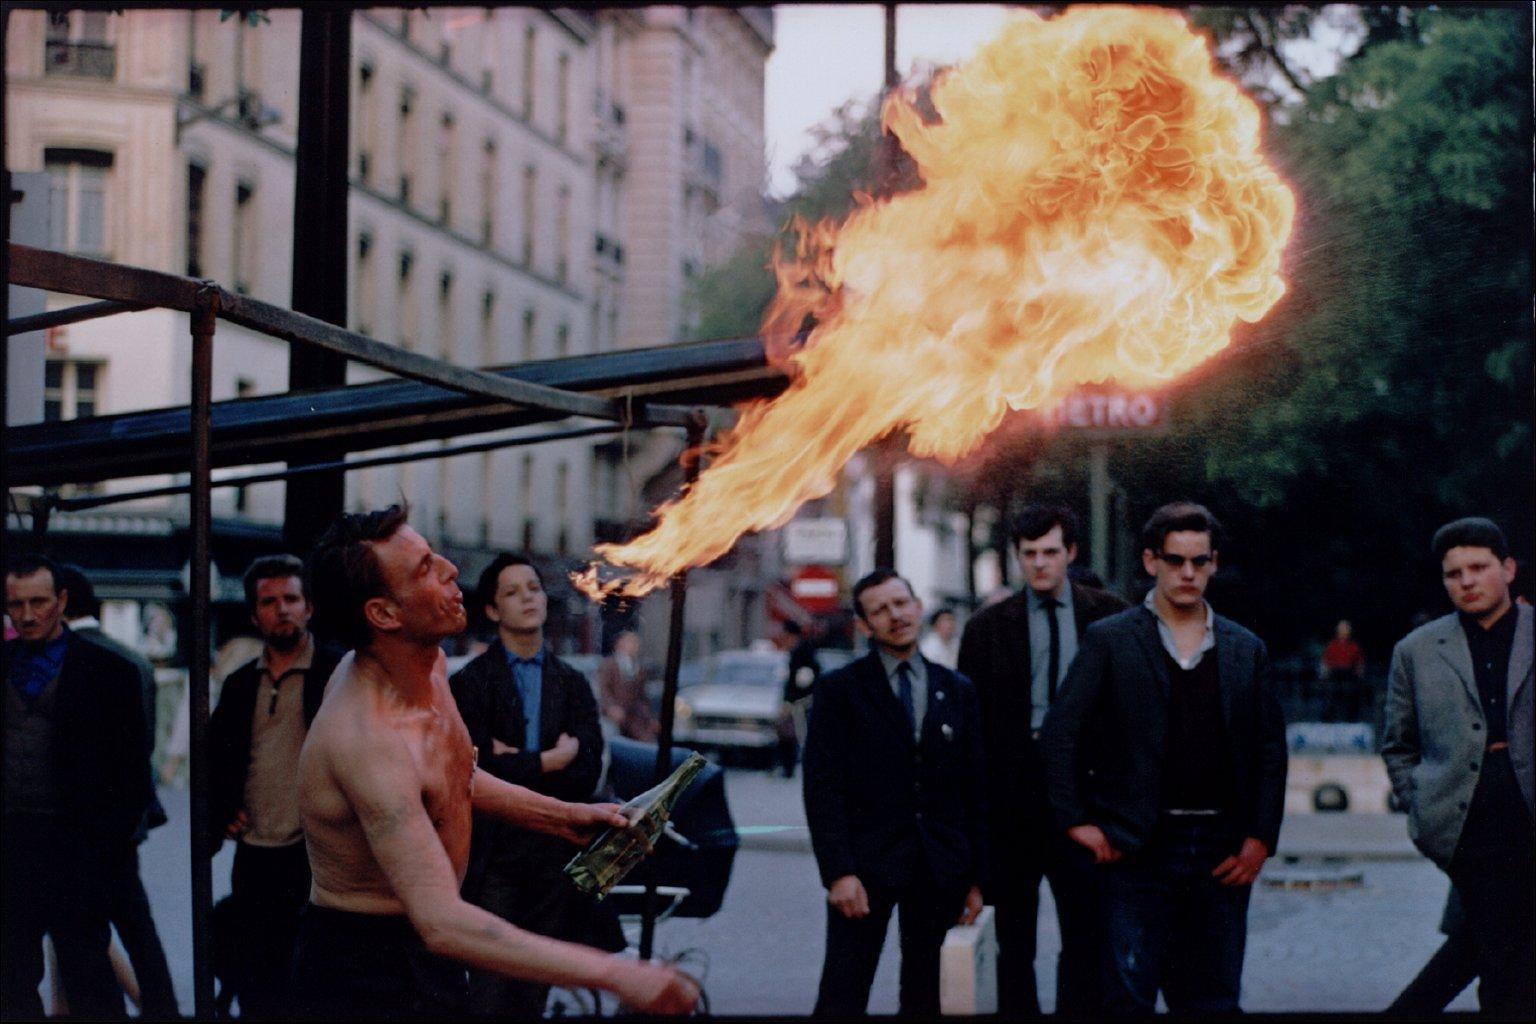 Joel-Meyerowitz-Street-Buskar-published-1981-painting-artwork-print